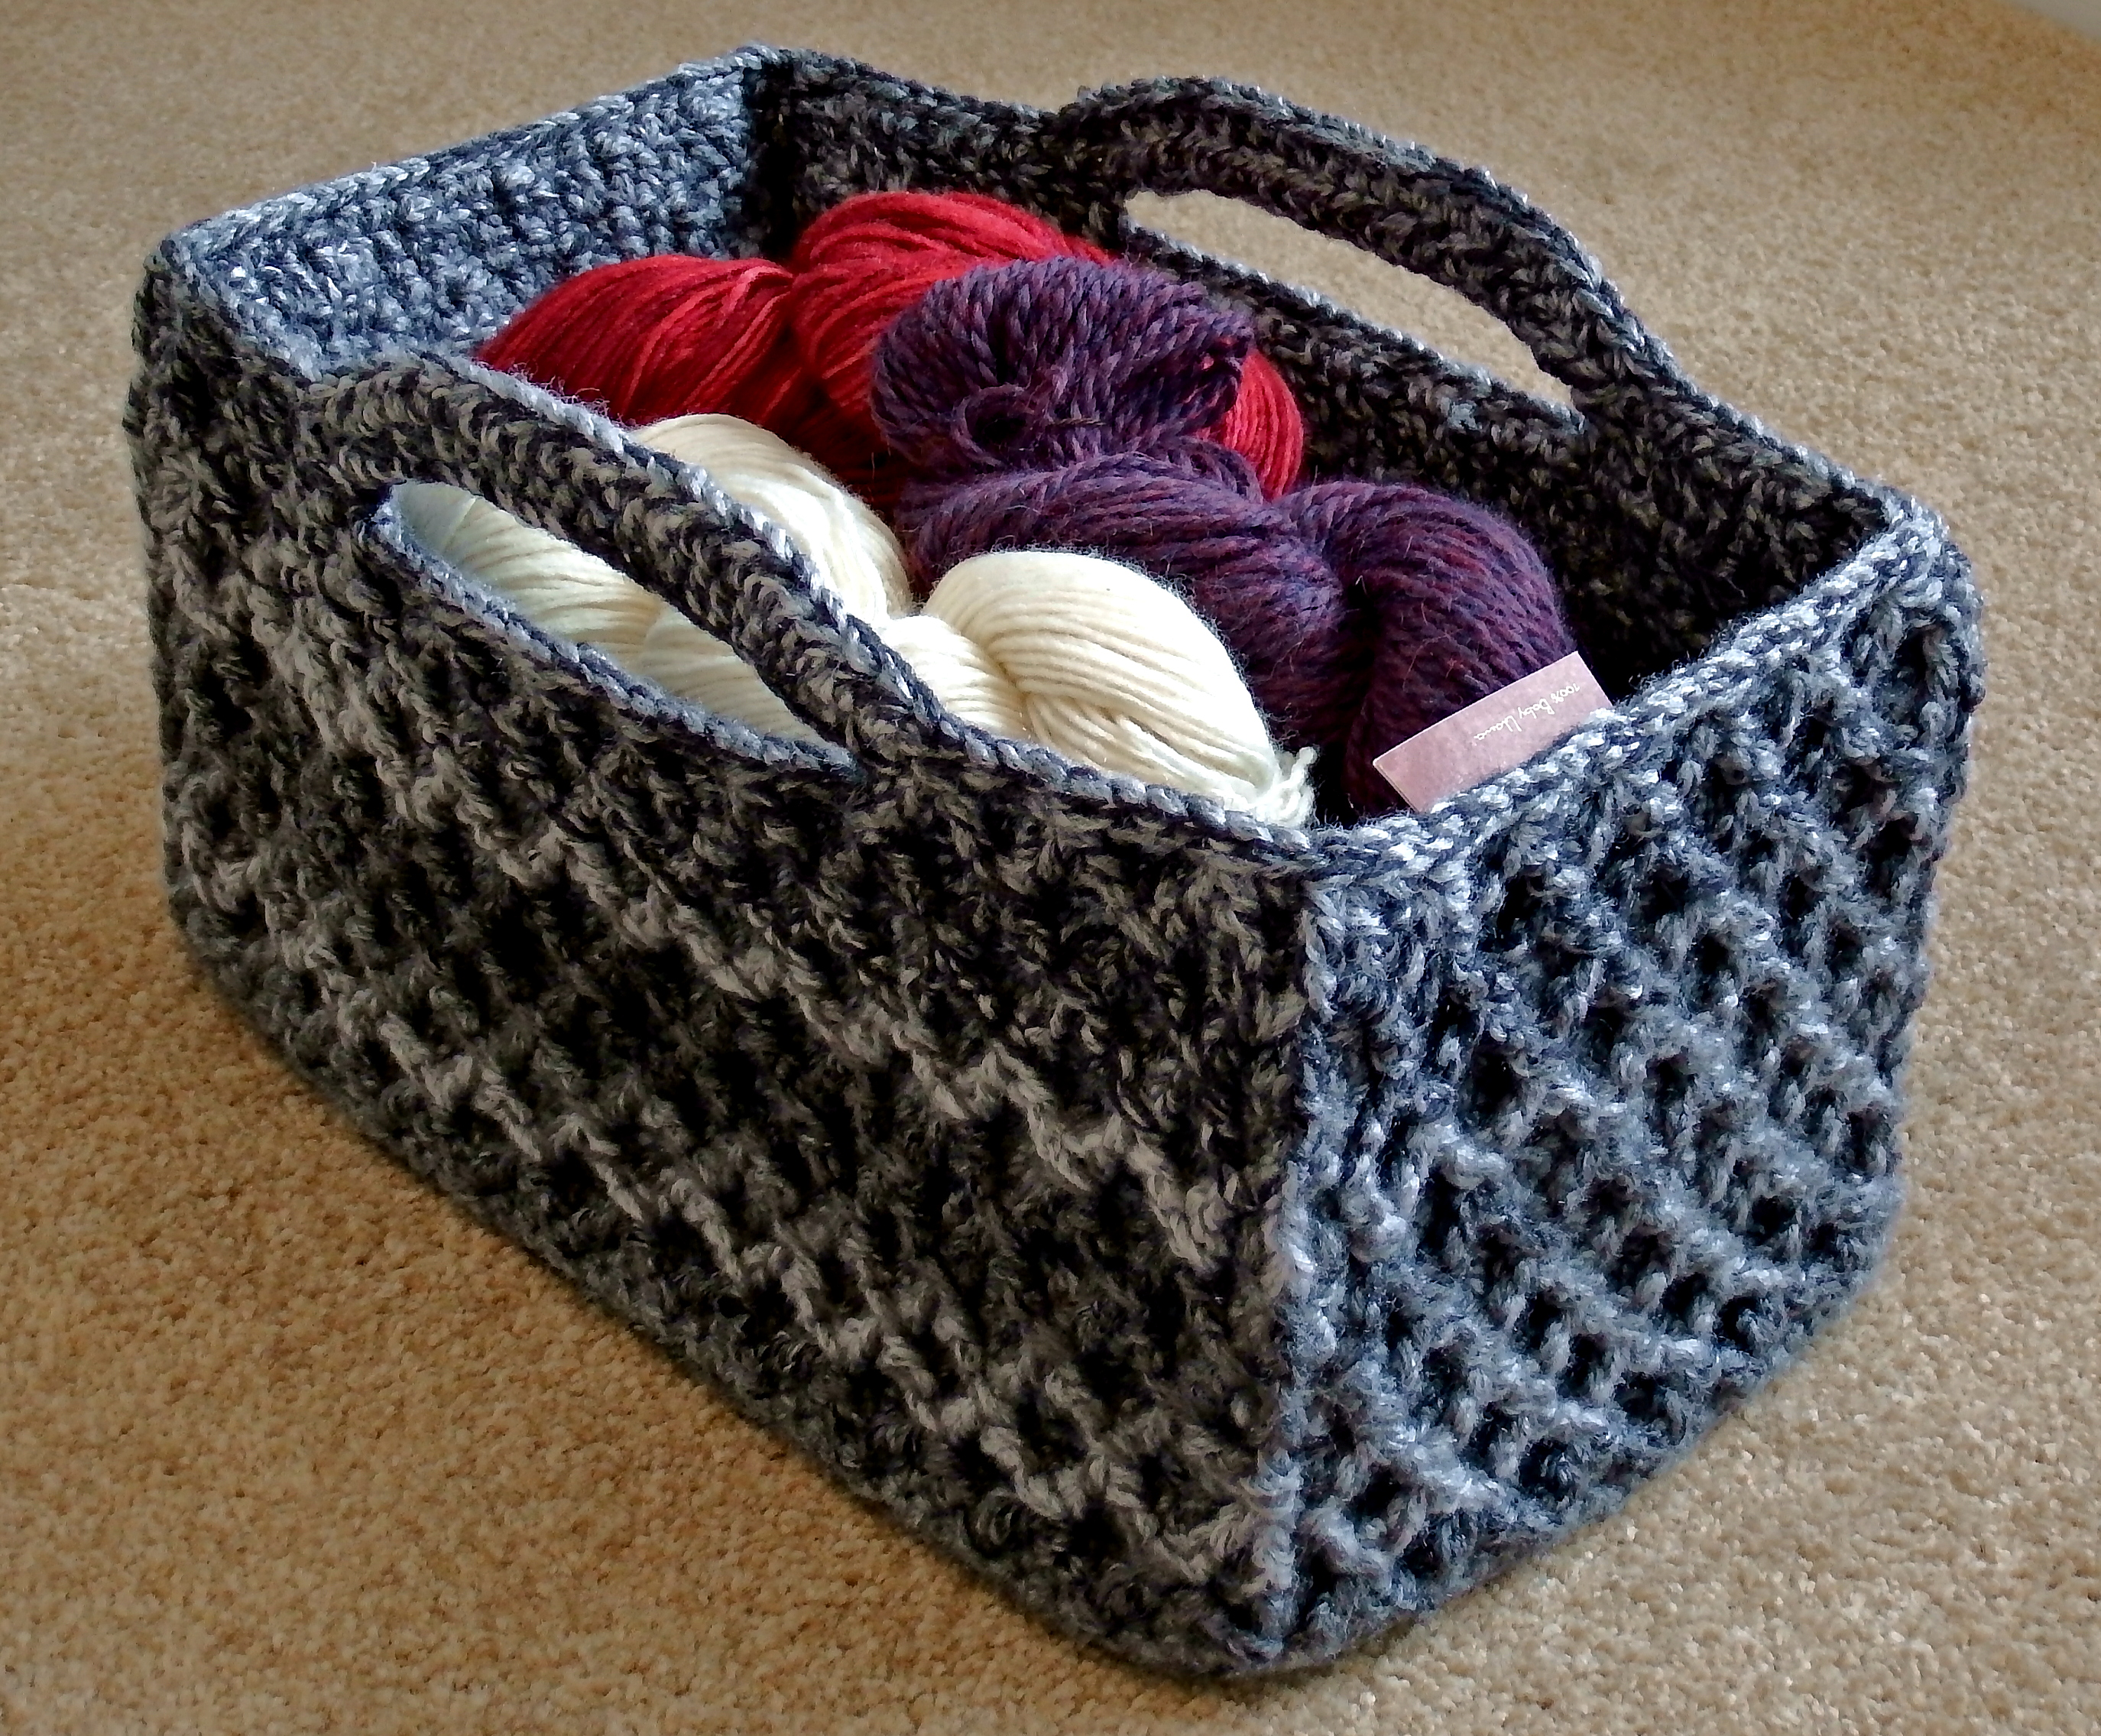 ... Basket - Free customisable crochet pattern with video stitch tutorial